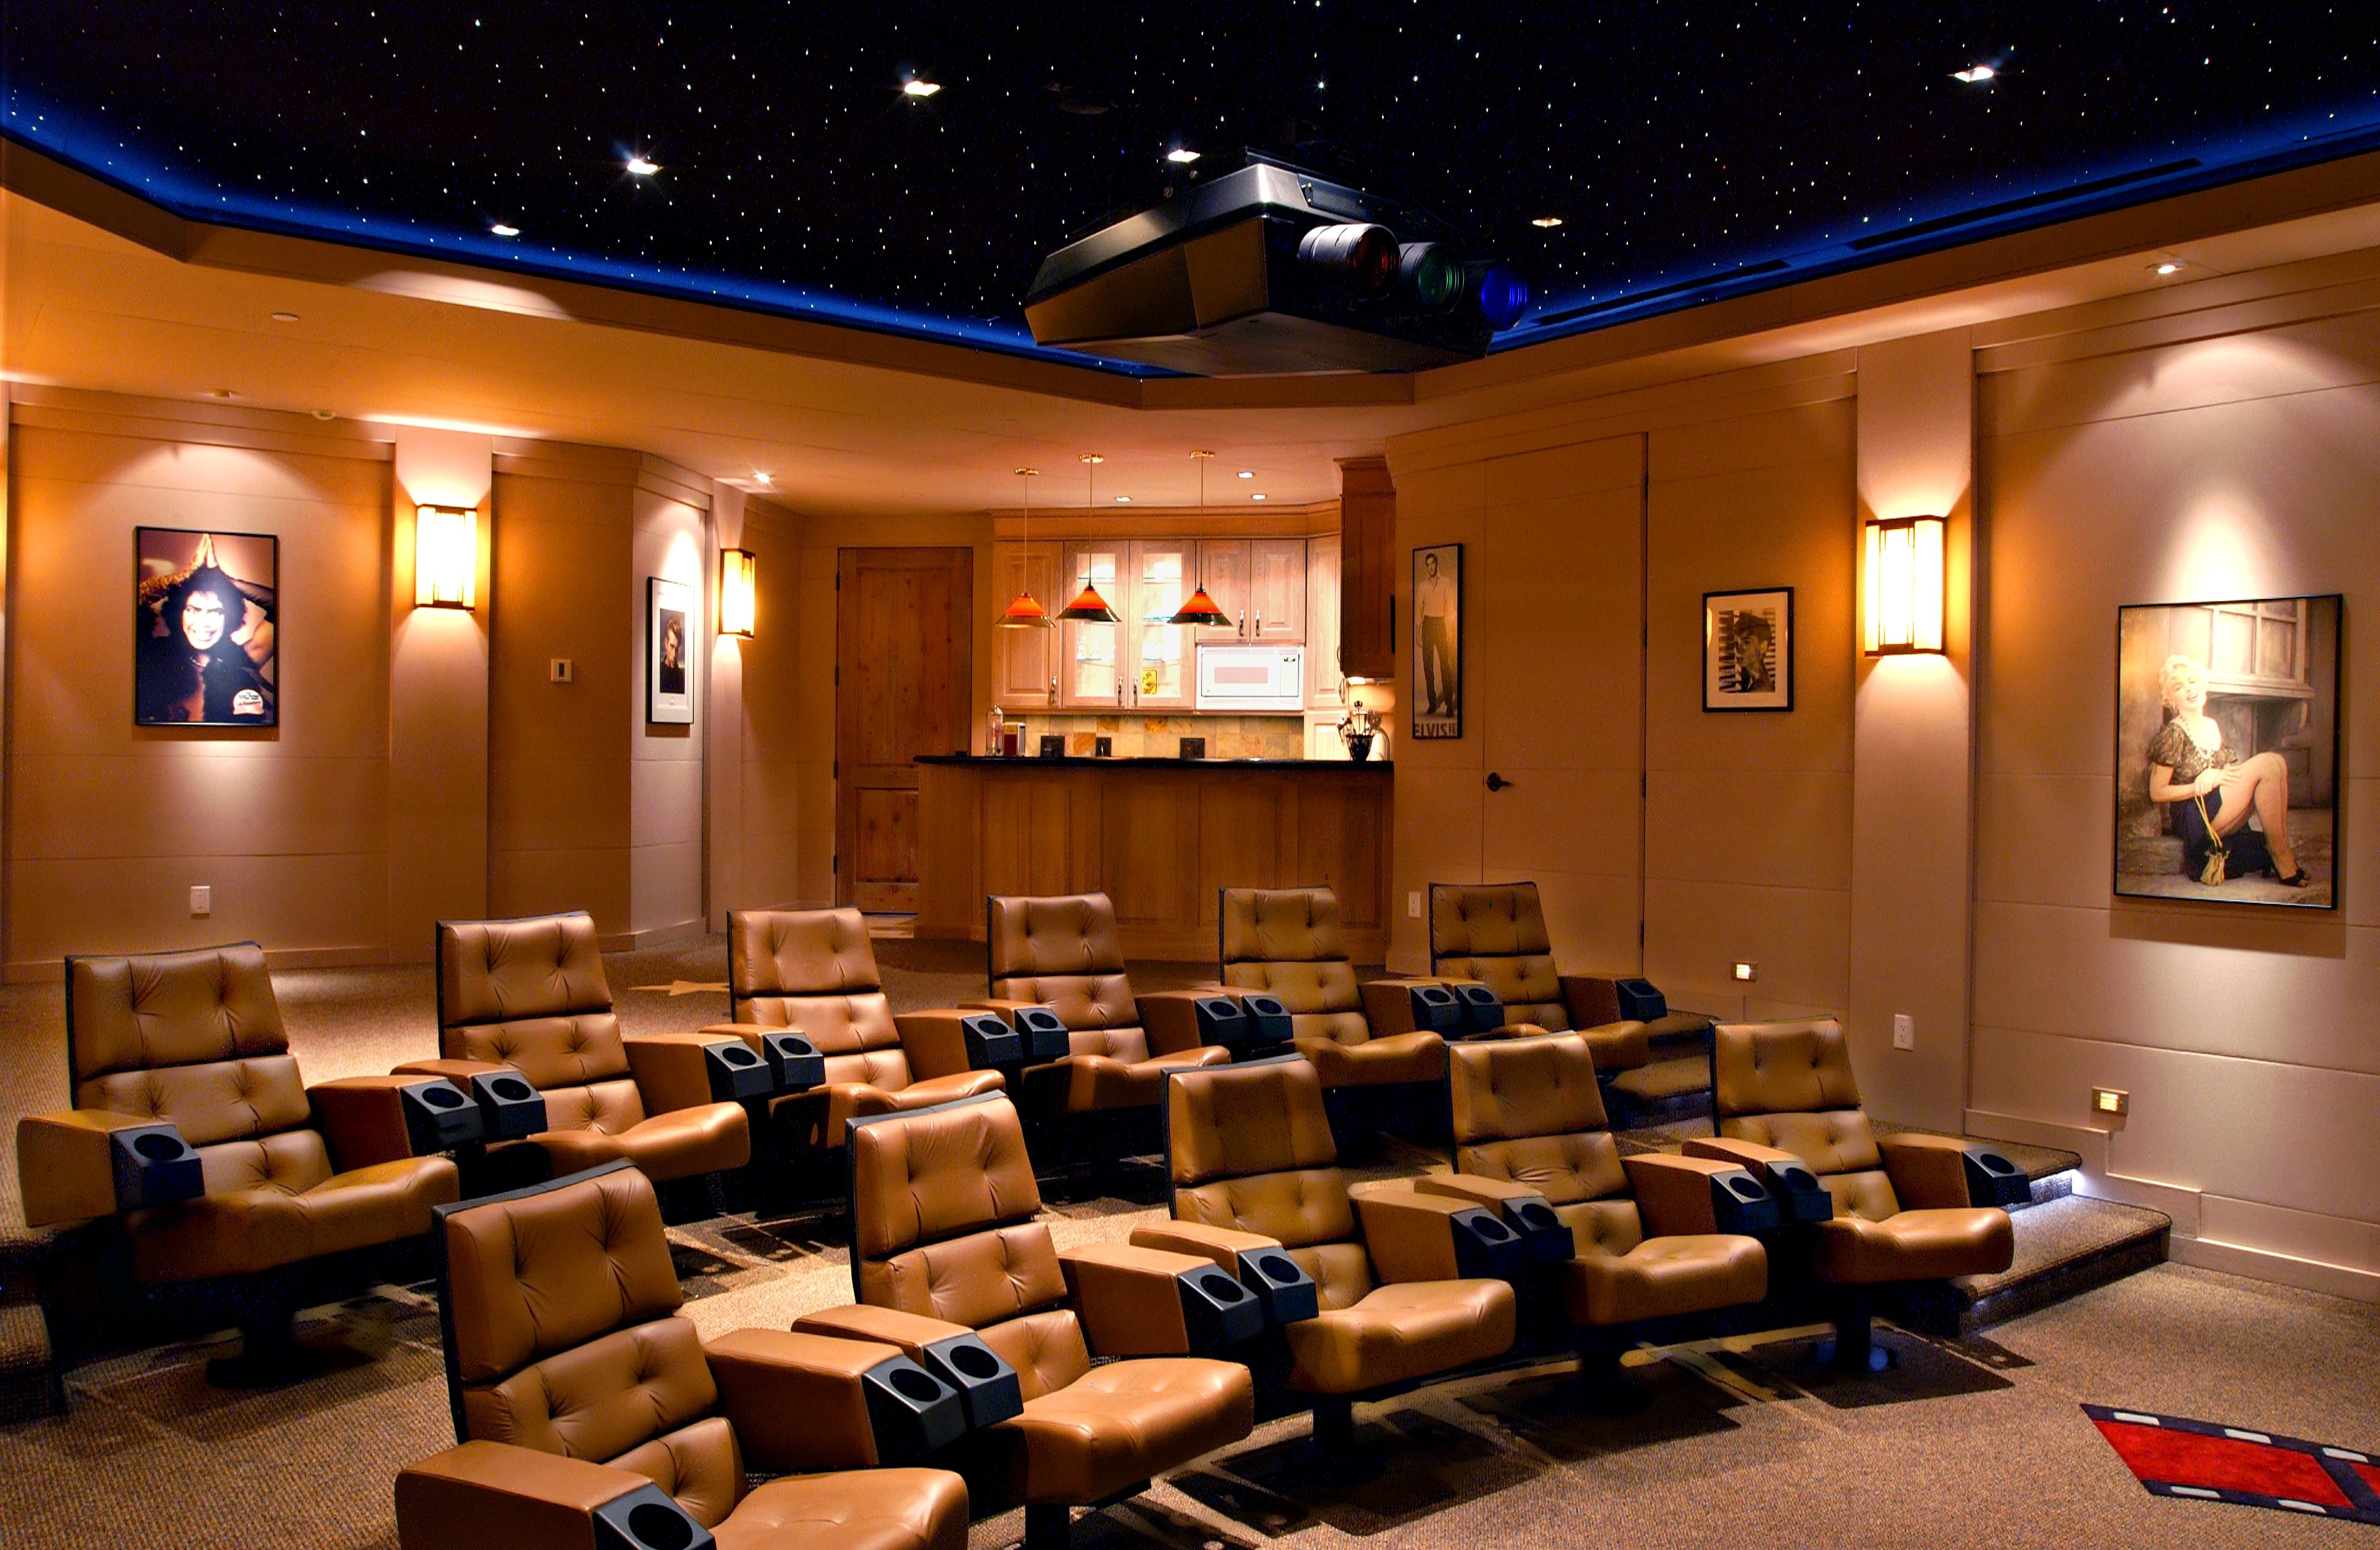 Home Theatre and Bar | mi casa | Pinterest | Theater seats and Interiors